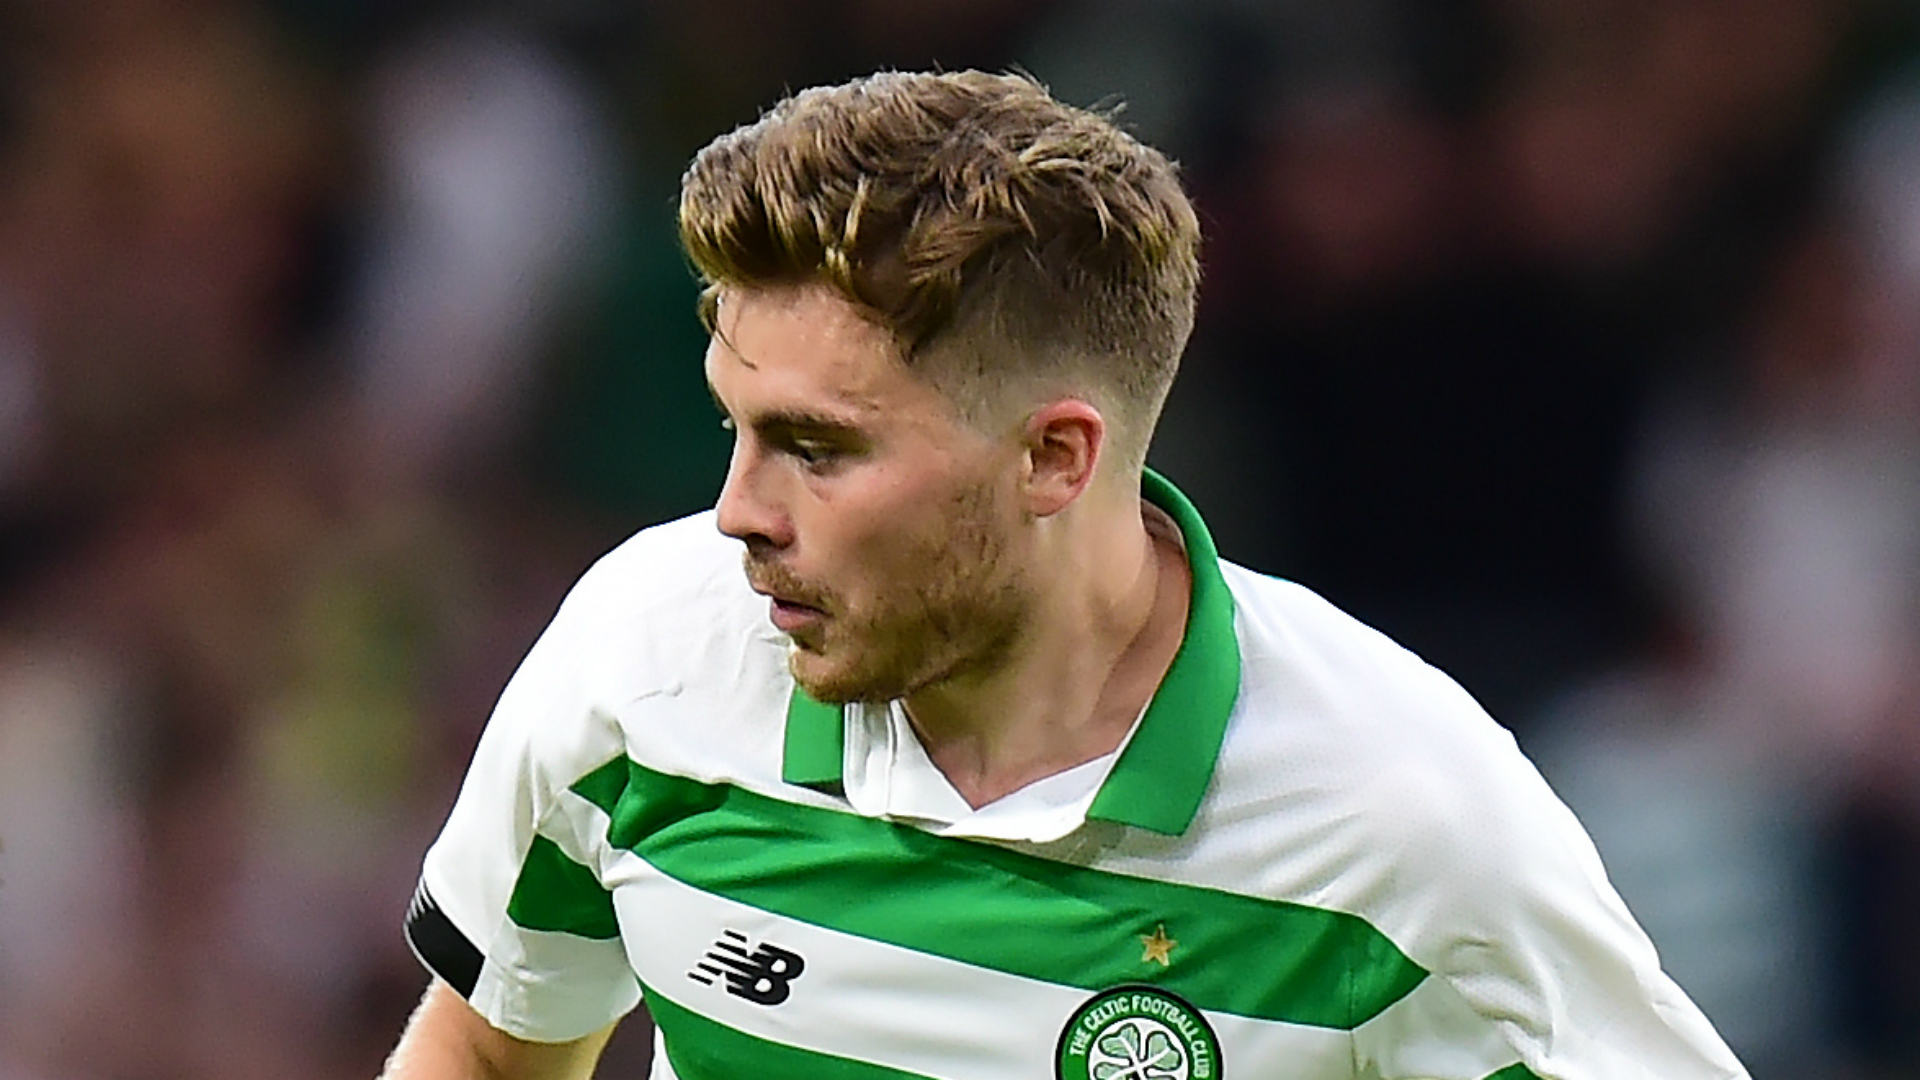 CFR Cluj 1-1 Celtic: Forrest fires as Lennon's men come from behind